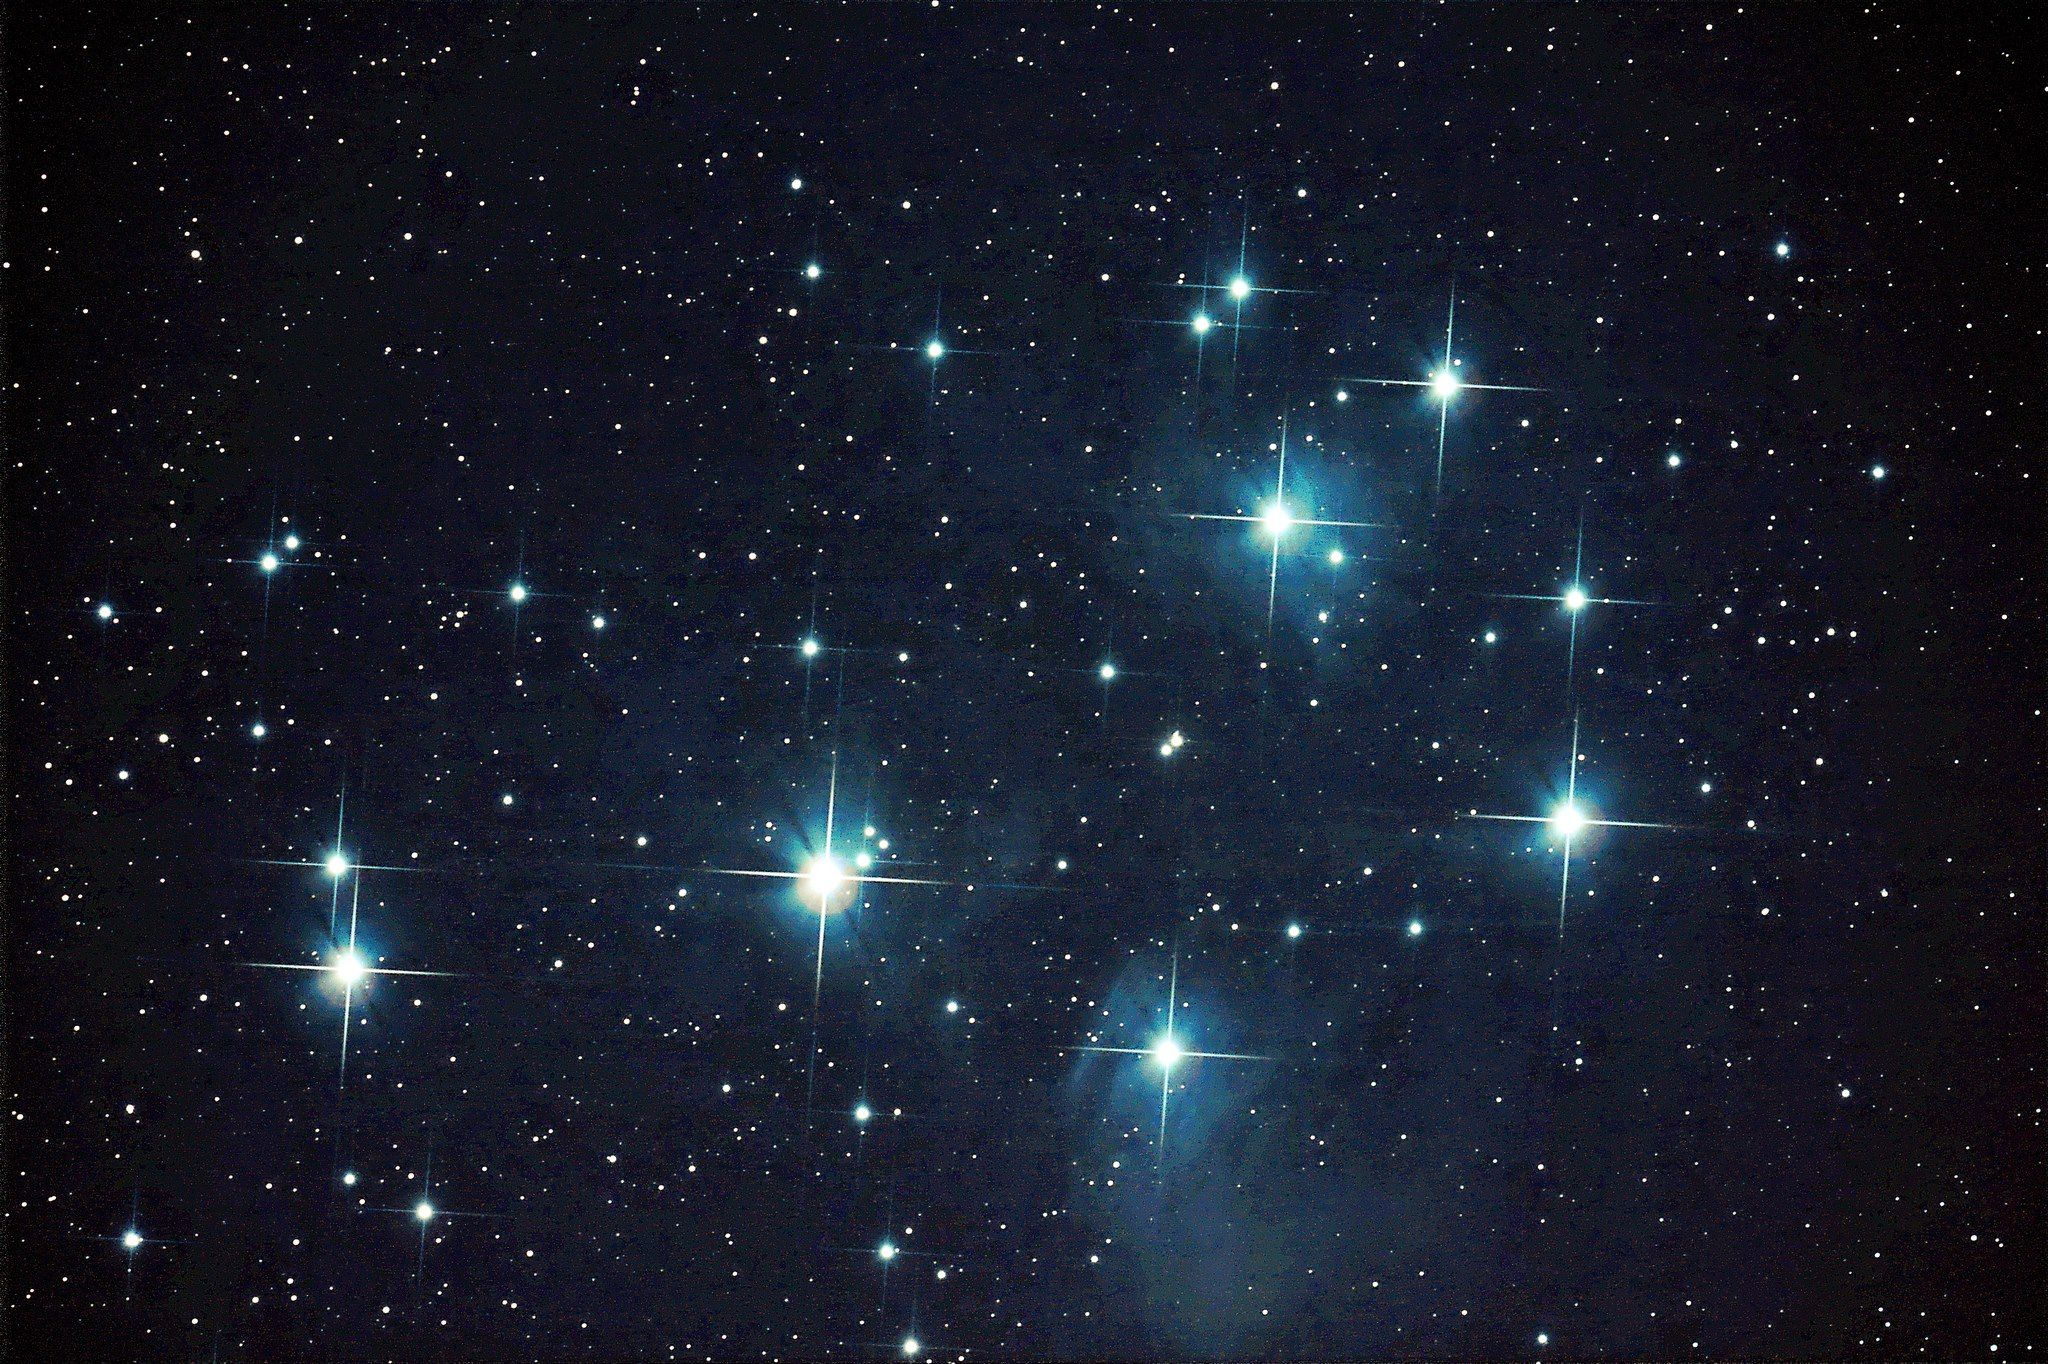 The Pleiades, an open star cluster in the constellation of Taurus.